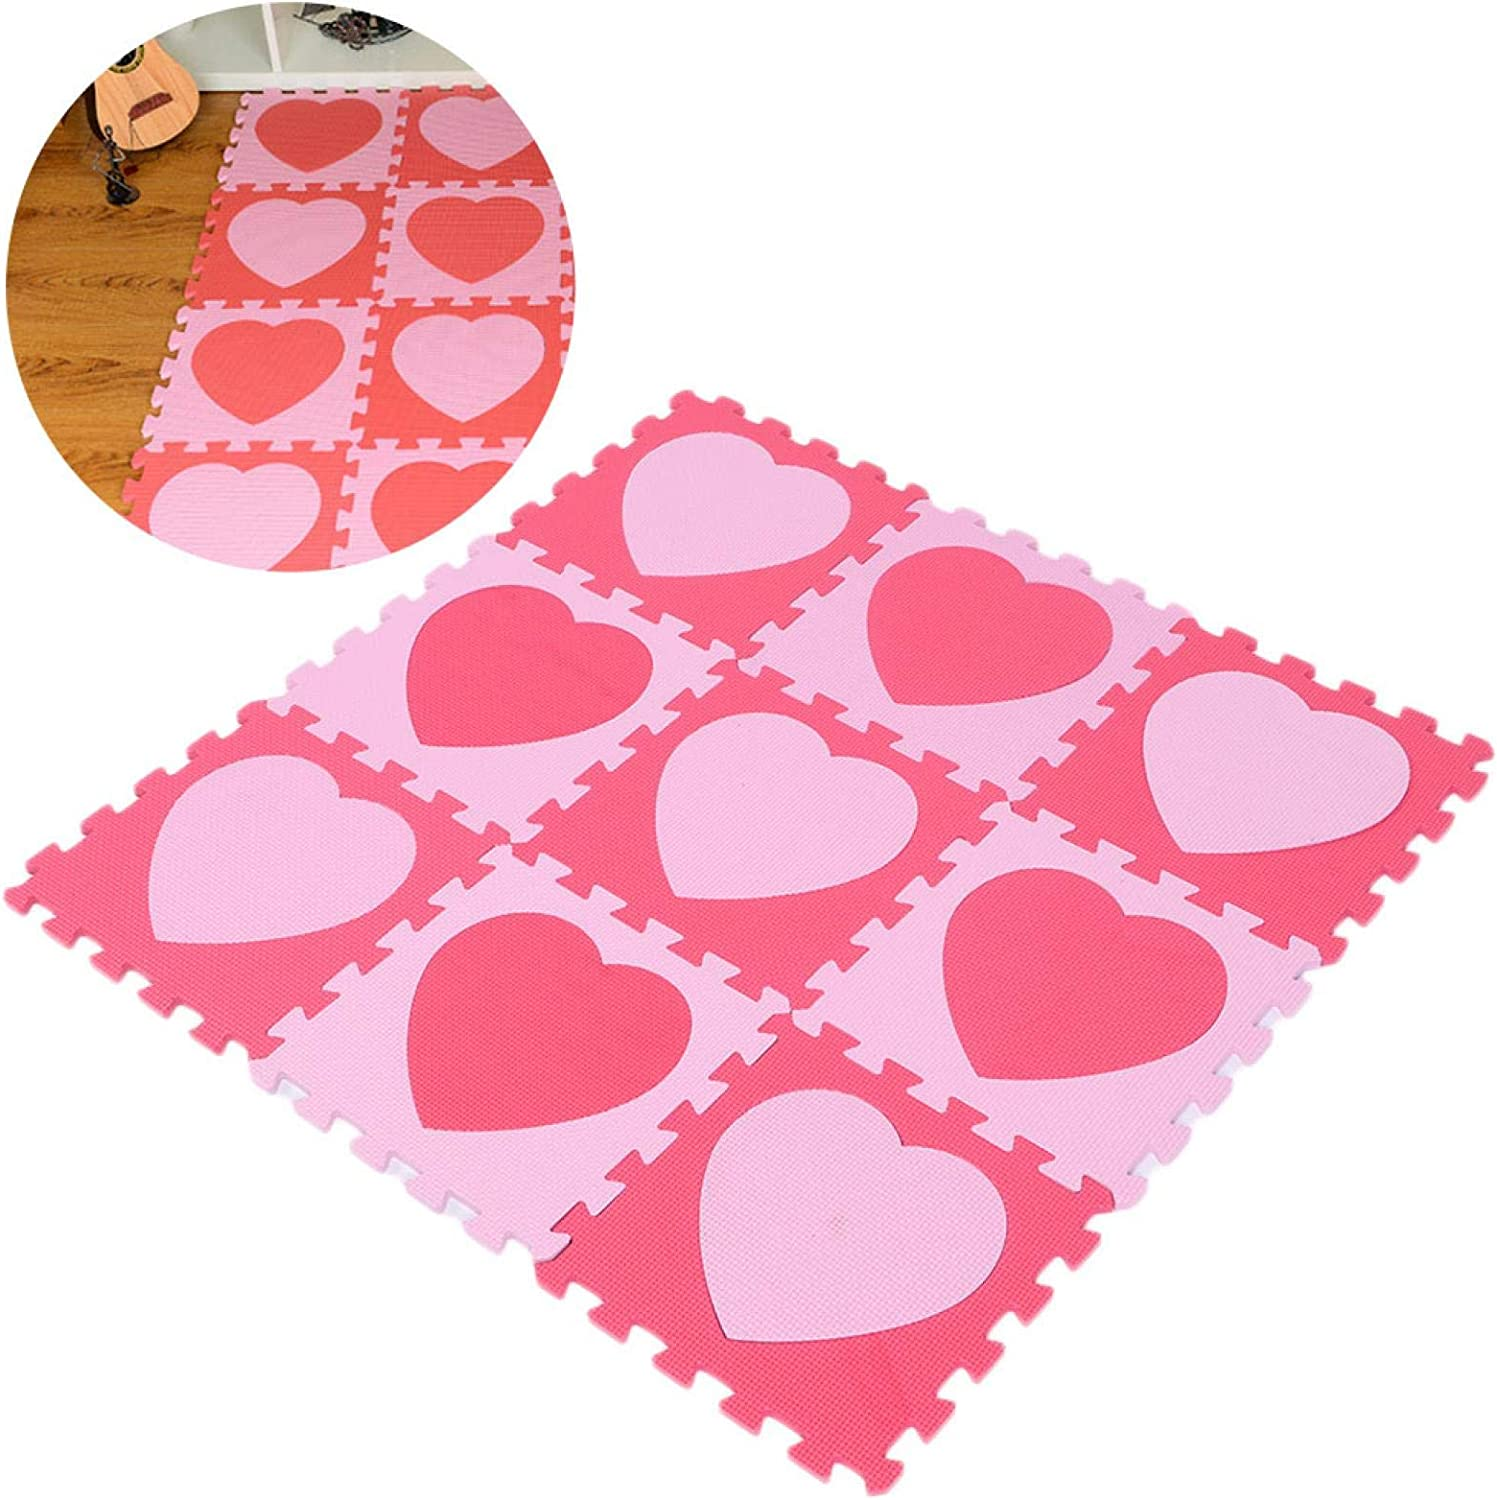 RBSD Heart Pattern Crawling Mat Easy Or Cleaning Po Max 42% OFF Max 74% OFF Odor for No